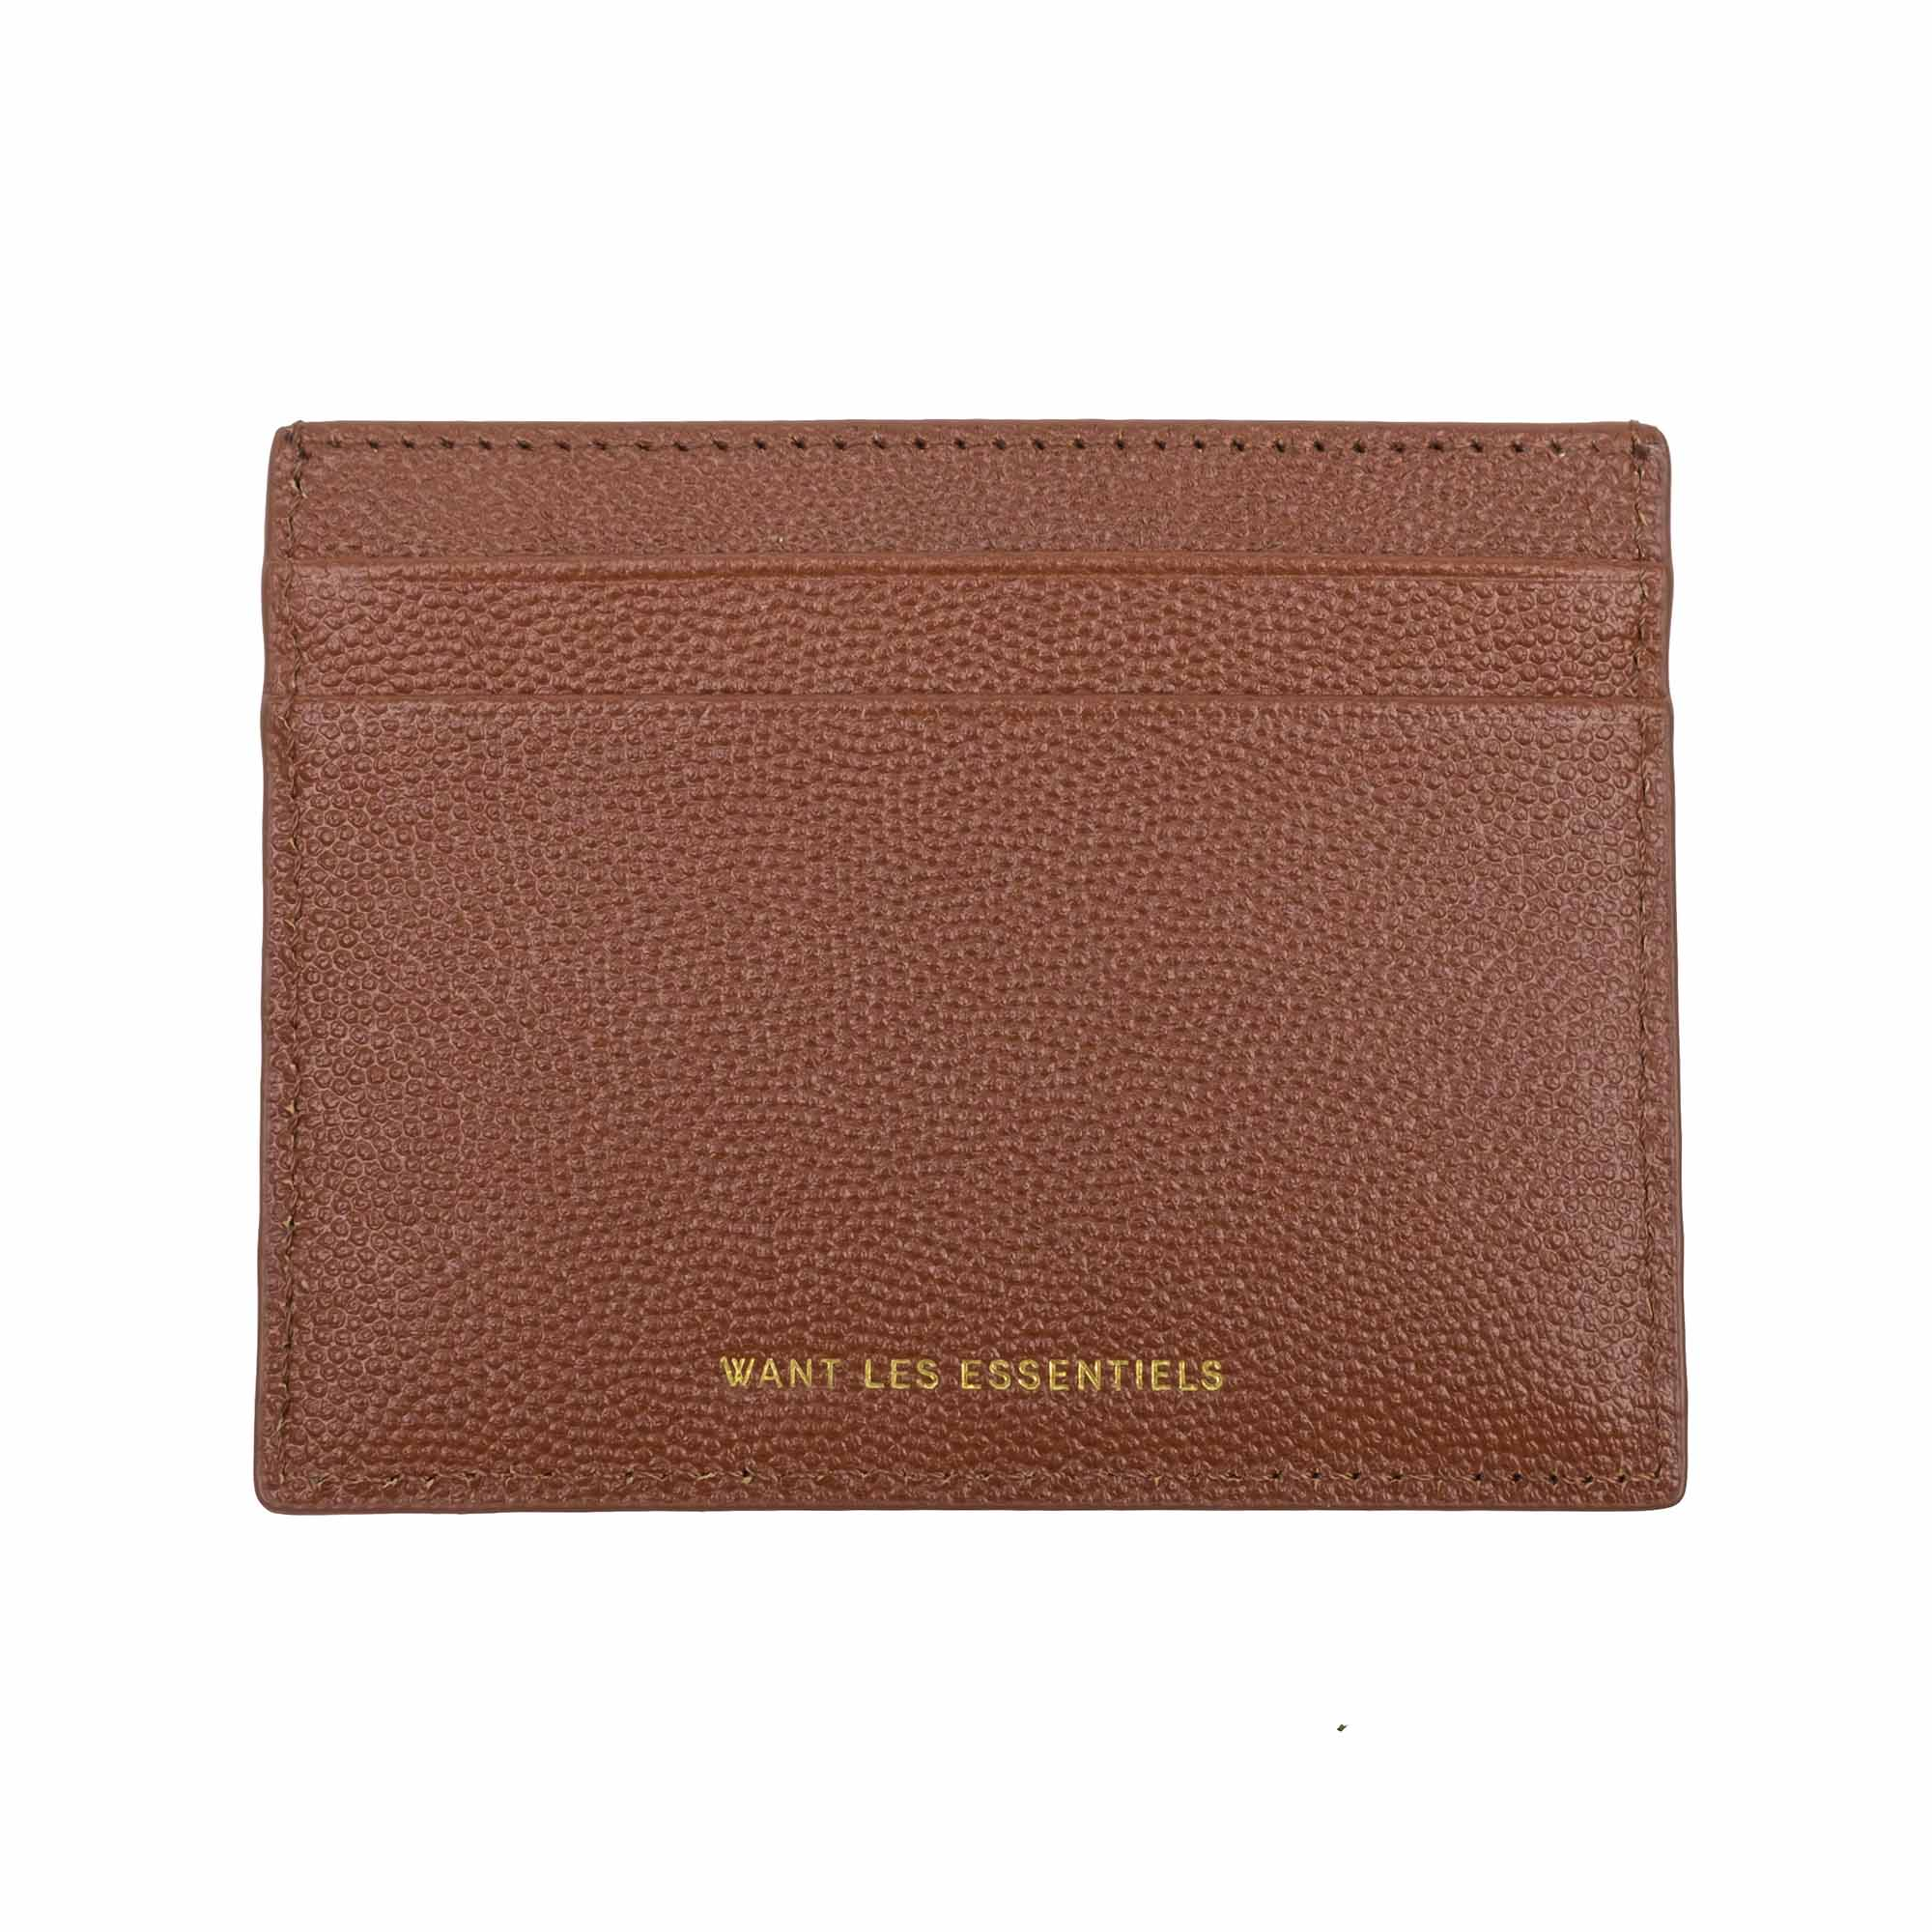 WANT Les Essentiels Branson Cardholder - Sequoia Caviar